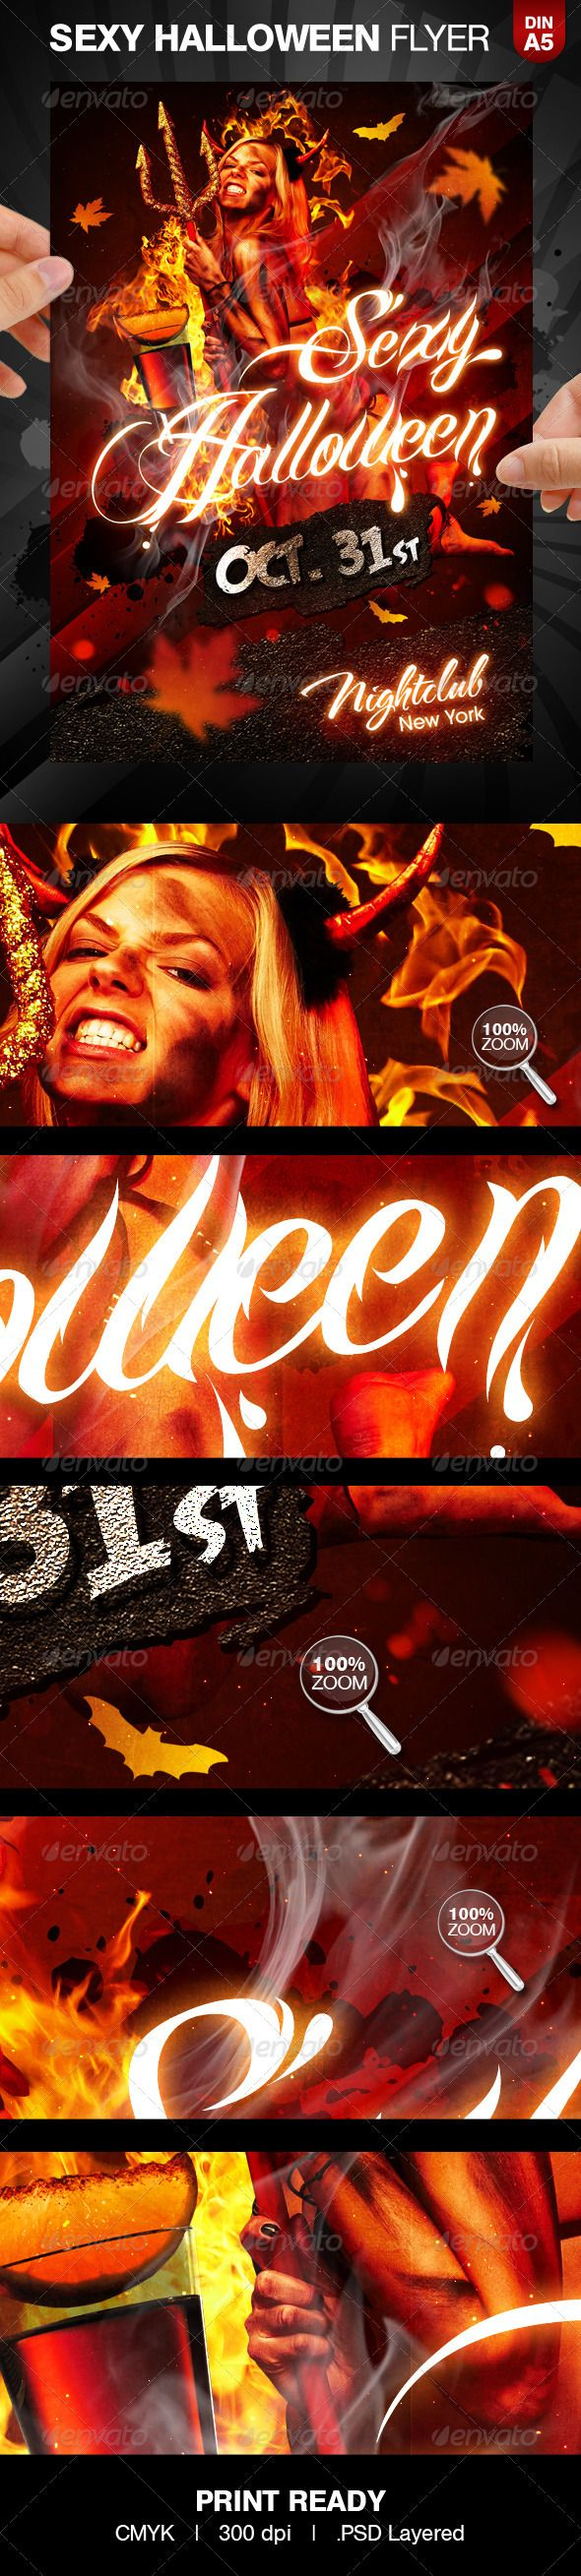 DOWNLOAD THIS FLYER HERE > http://graphicriver.net/item/sexy-halloween-party-flyer/493452?ref=anothergraphic